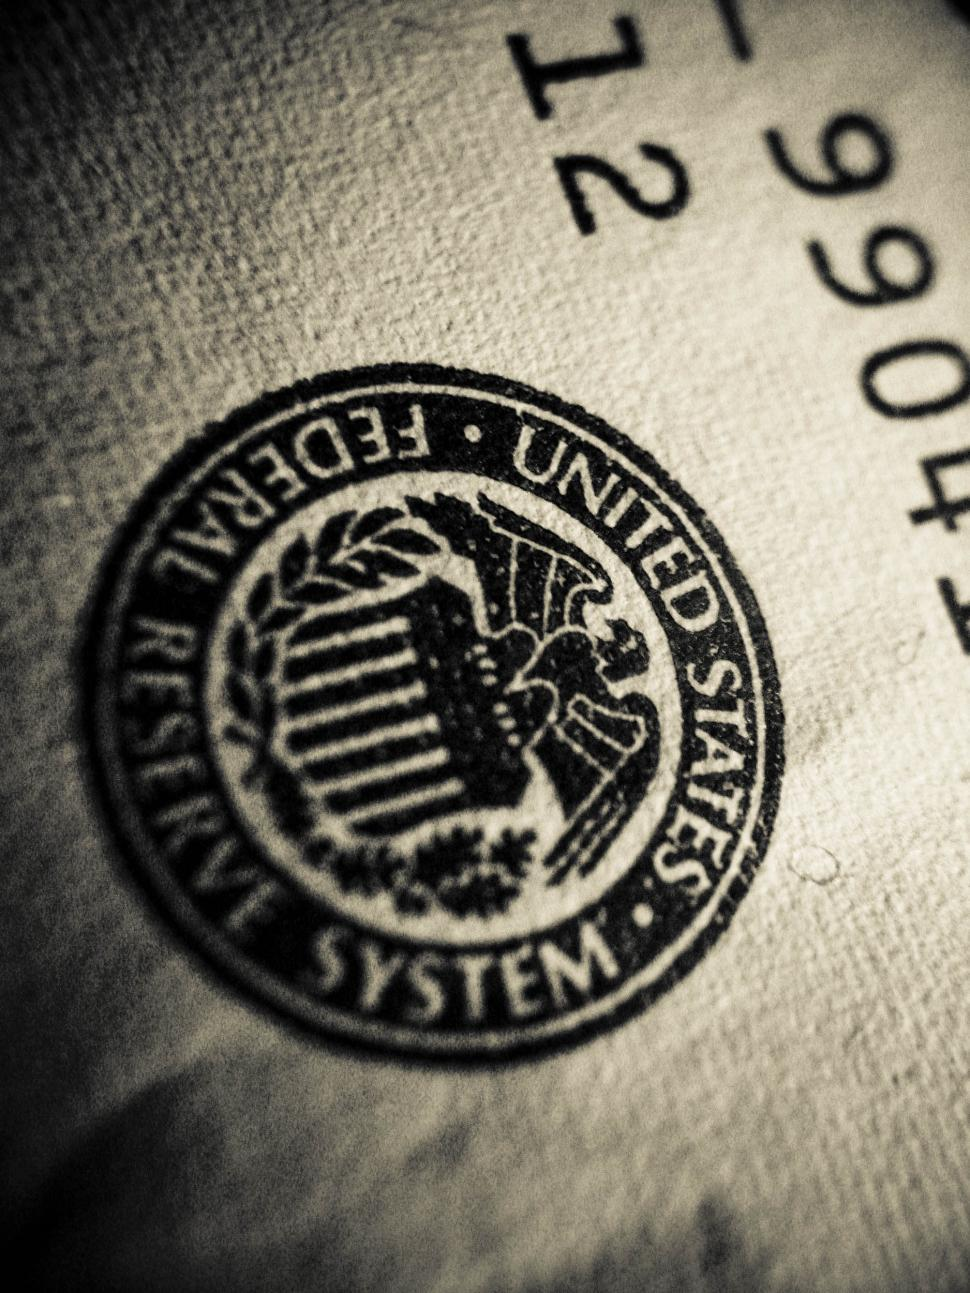 Download Free Stock Photo of US federal seal